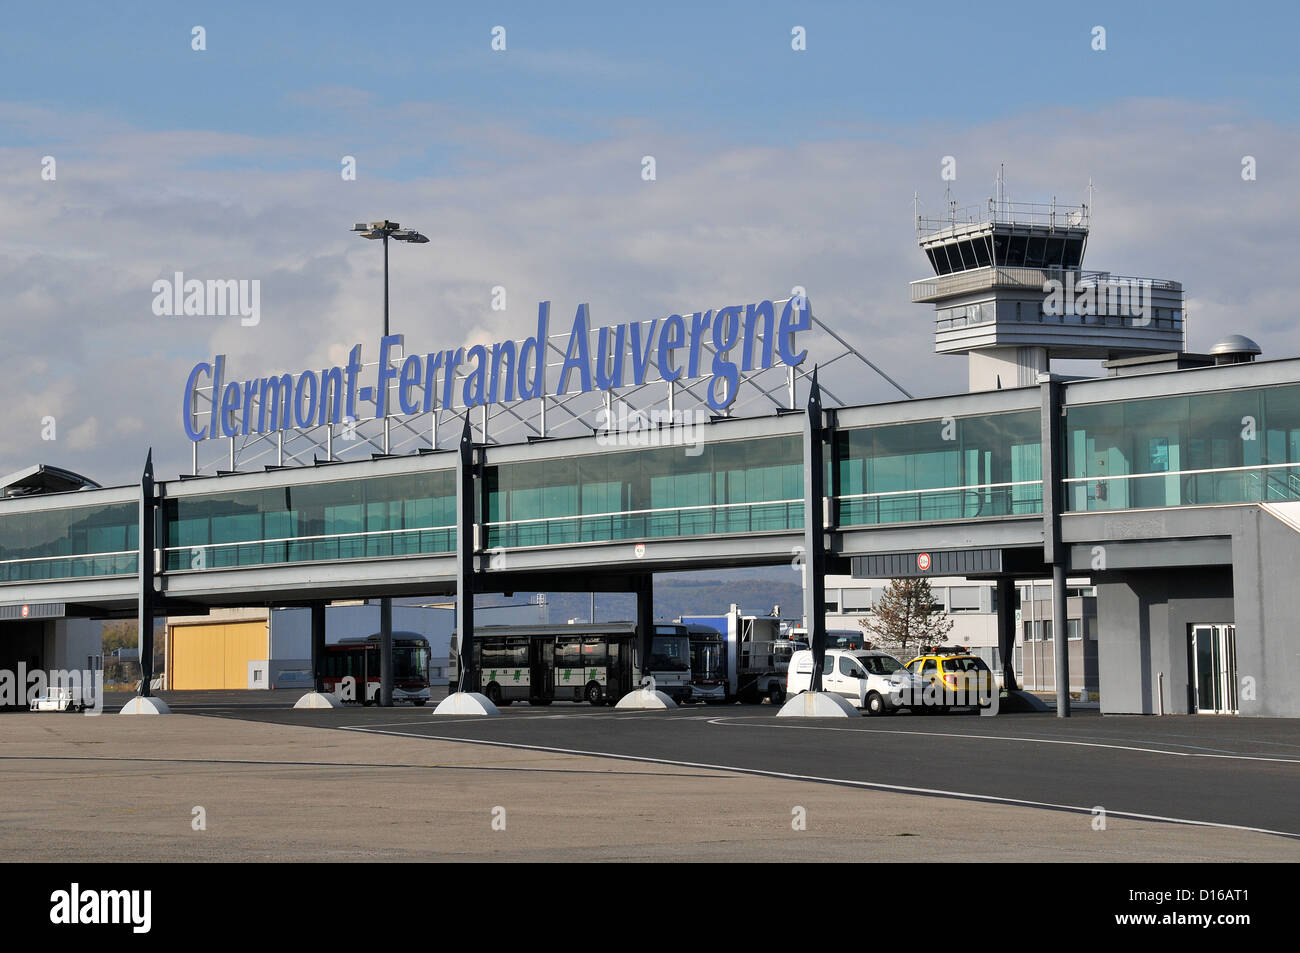 Clermont ferrand auvergne airport stock photo 52385985 alamy - Magasin de meuble a clermont ferrand ...